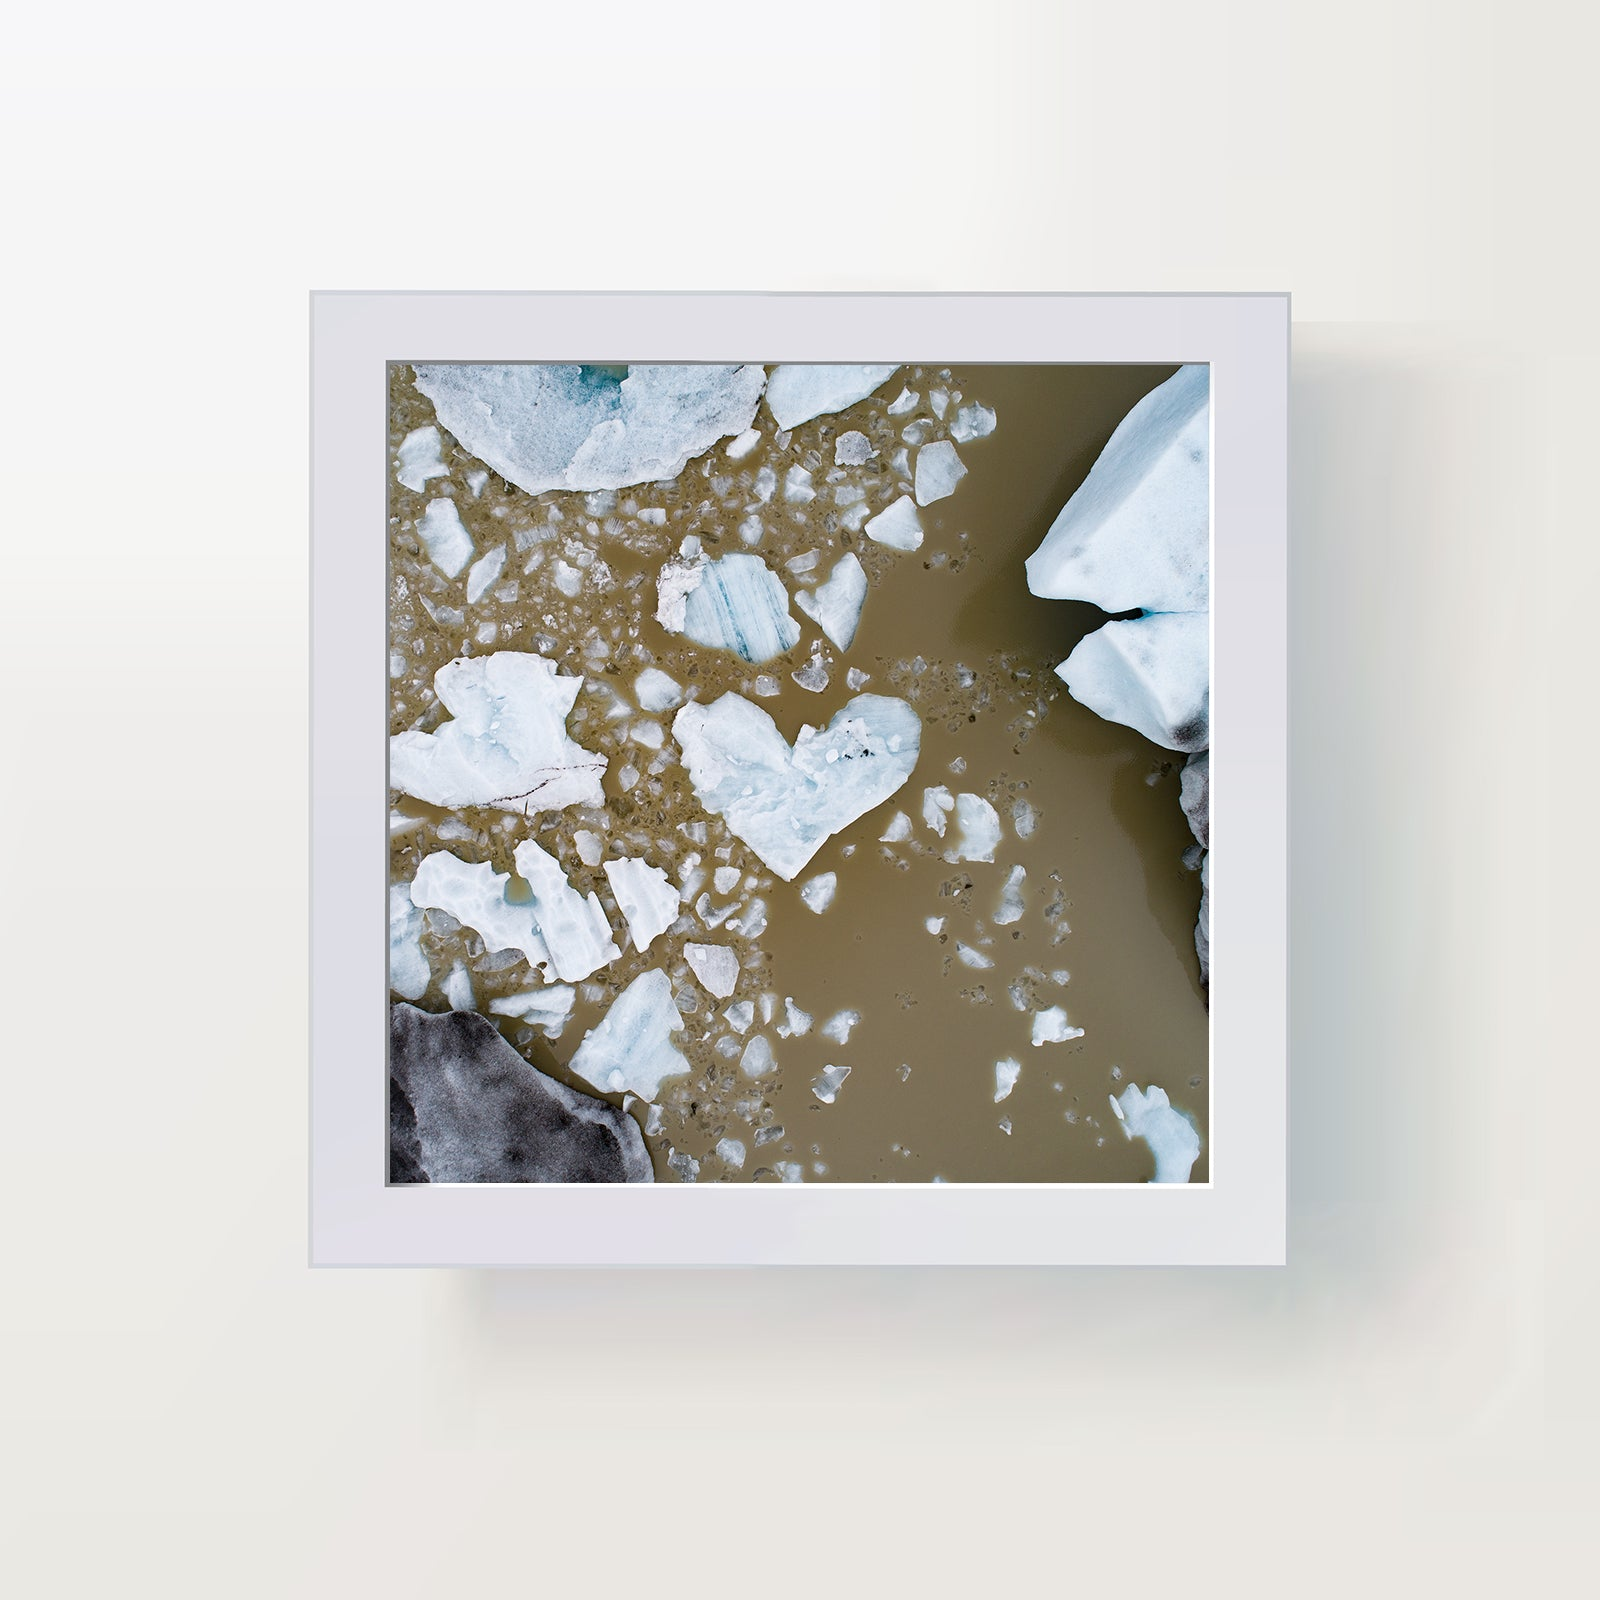 Heart shaped ice, photo art print